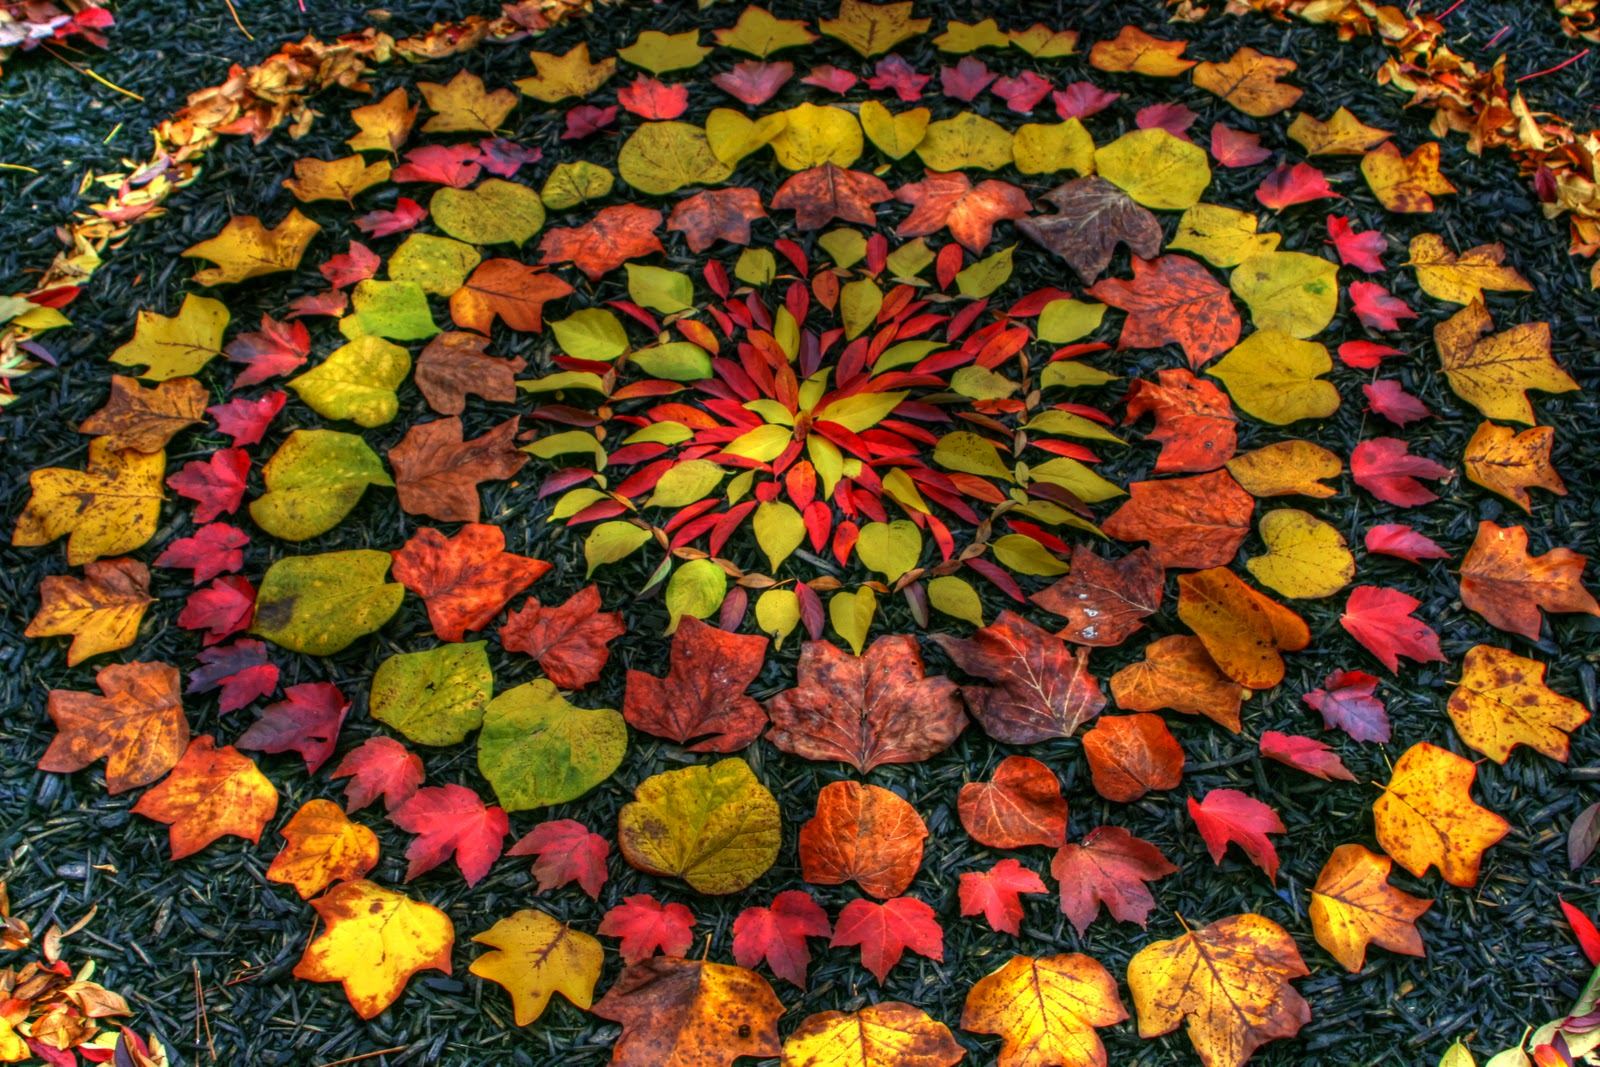 andy-goldsworthy-015.jpg